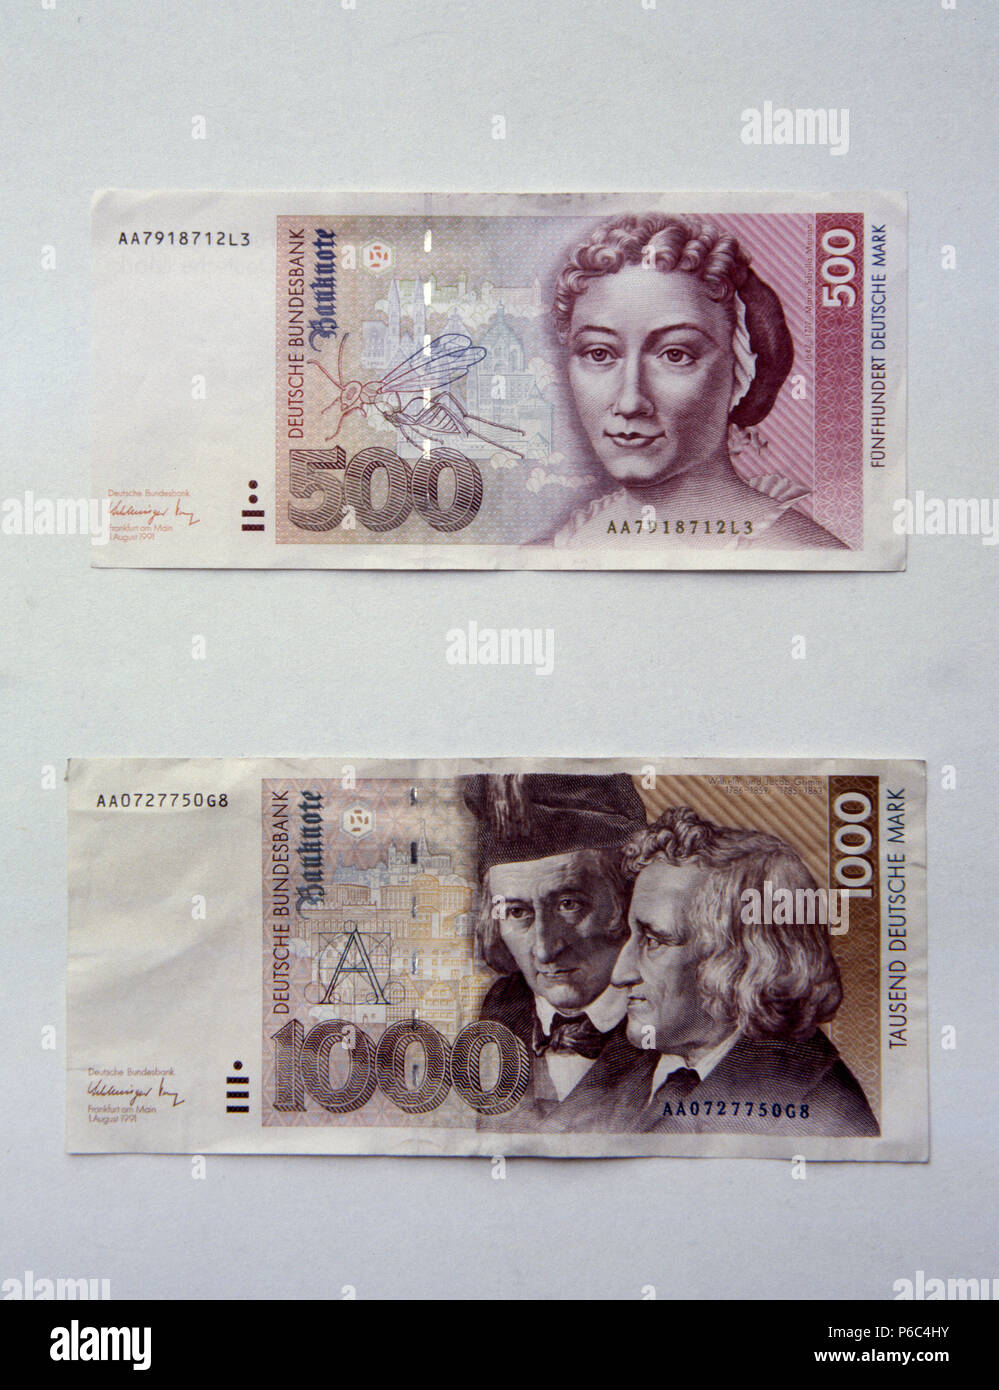 Berlin, Germany - Banknotes worth 500 DM and 1000 DM - Stock Image